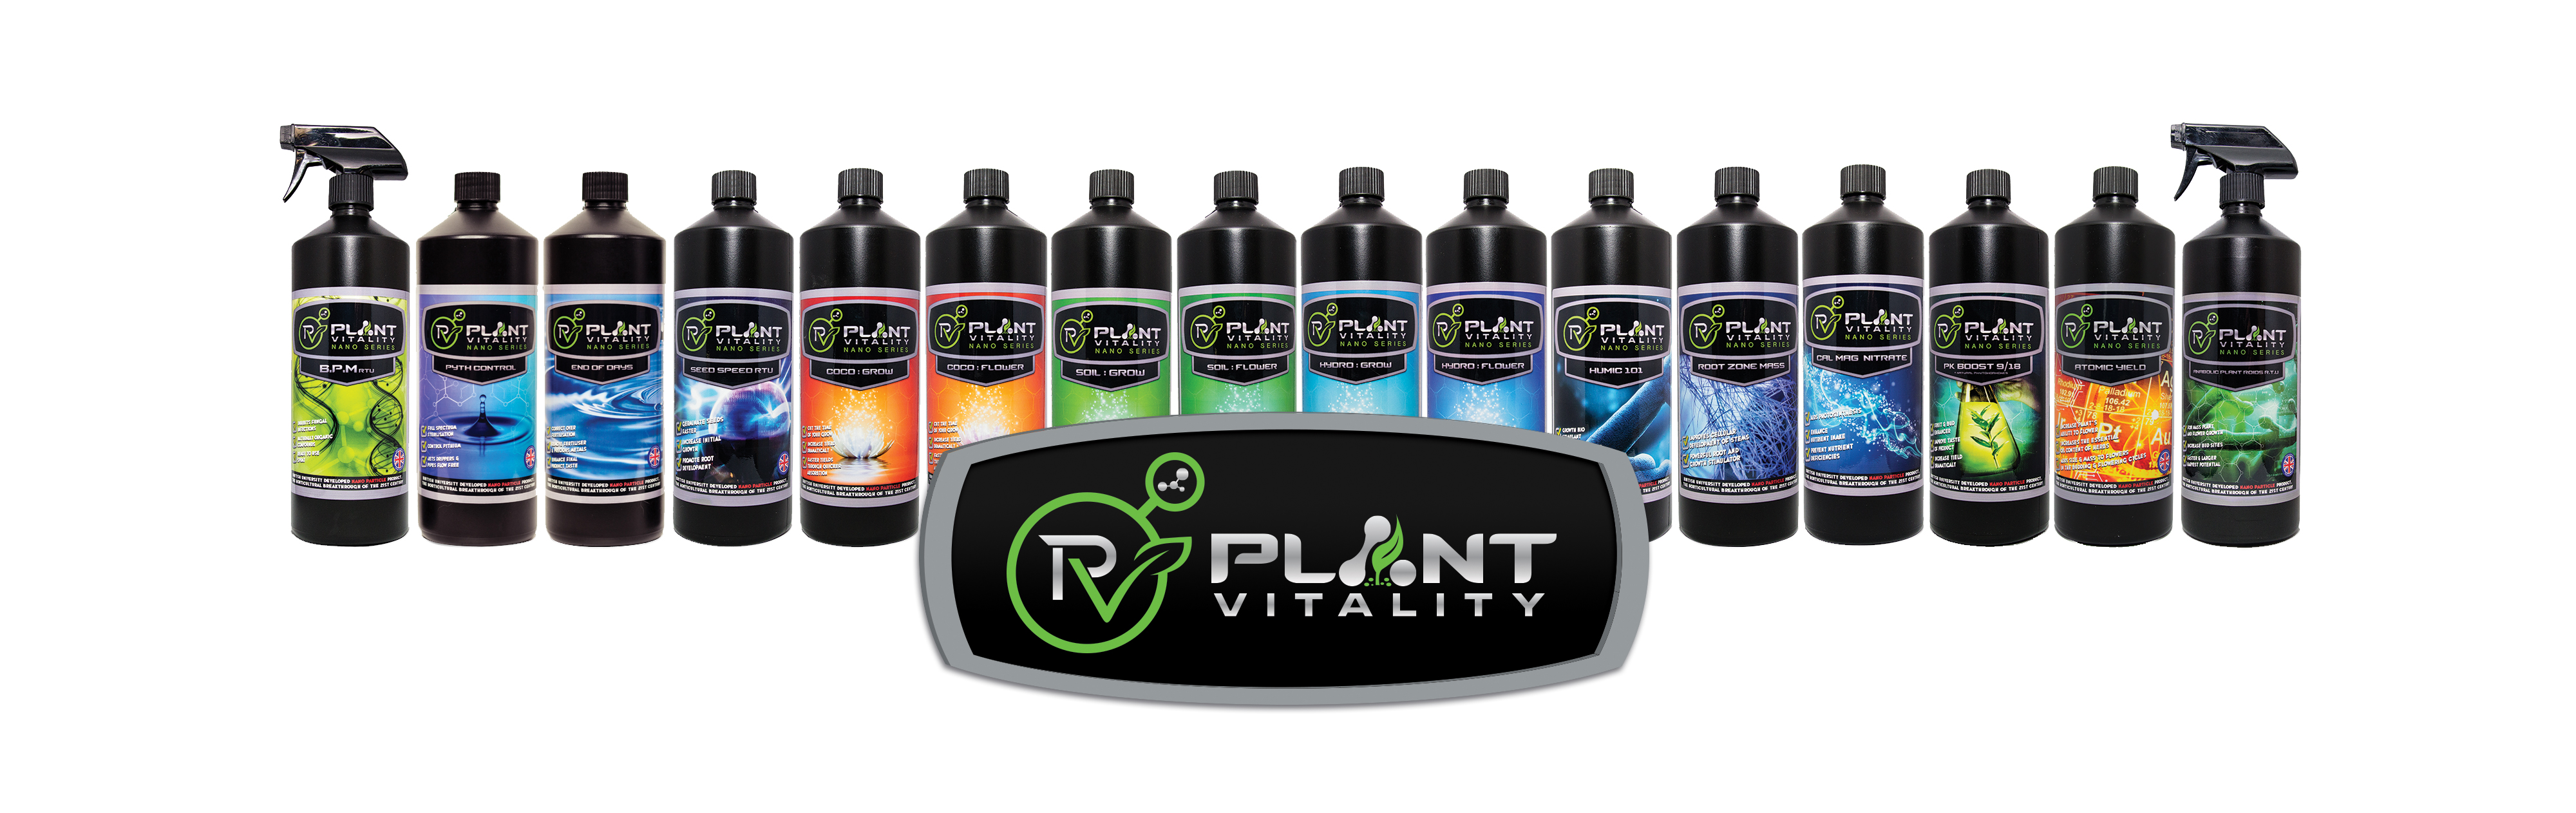 Plant Vitality Products